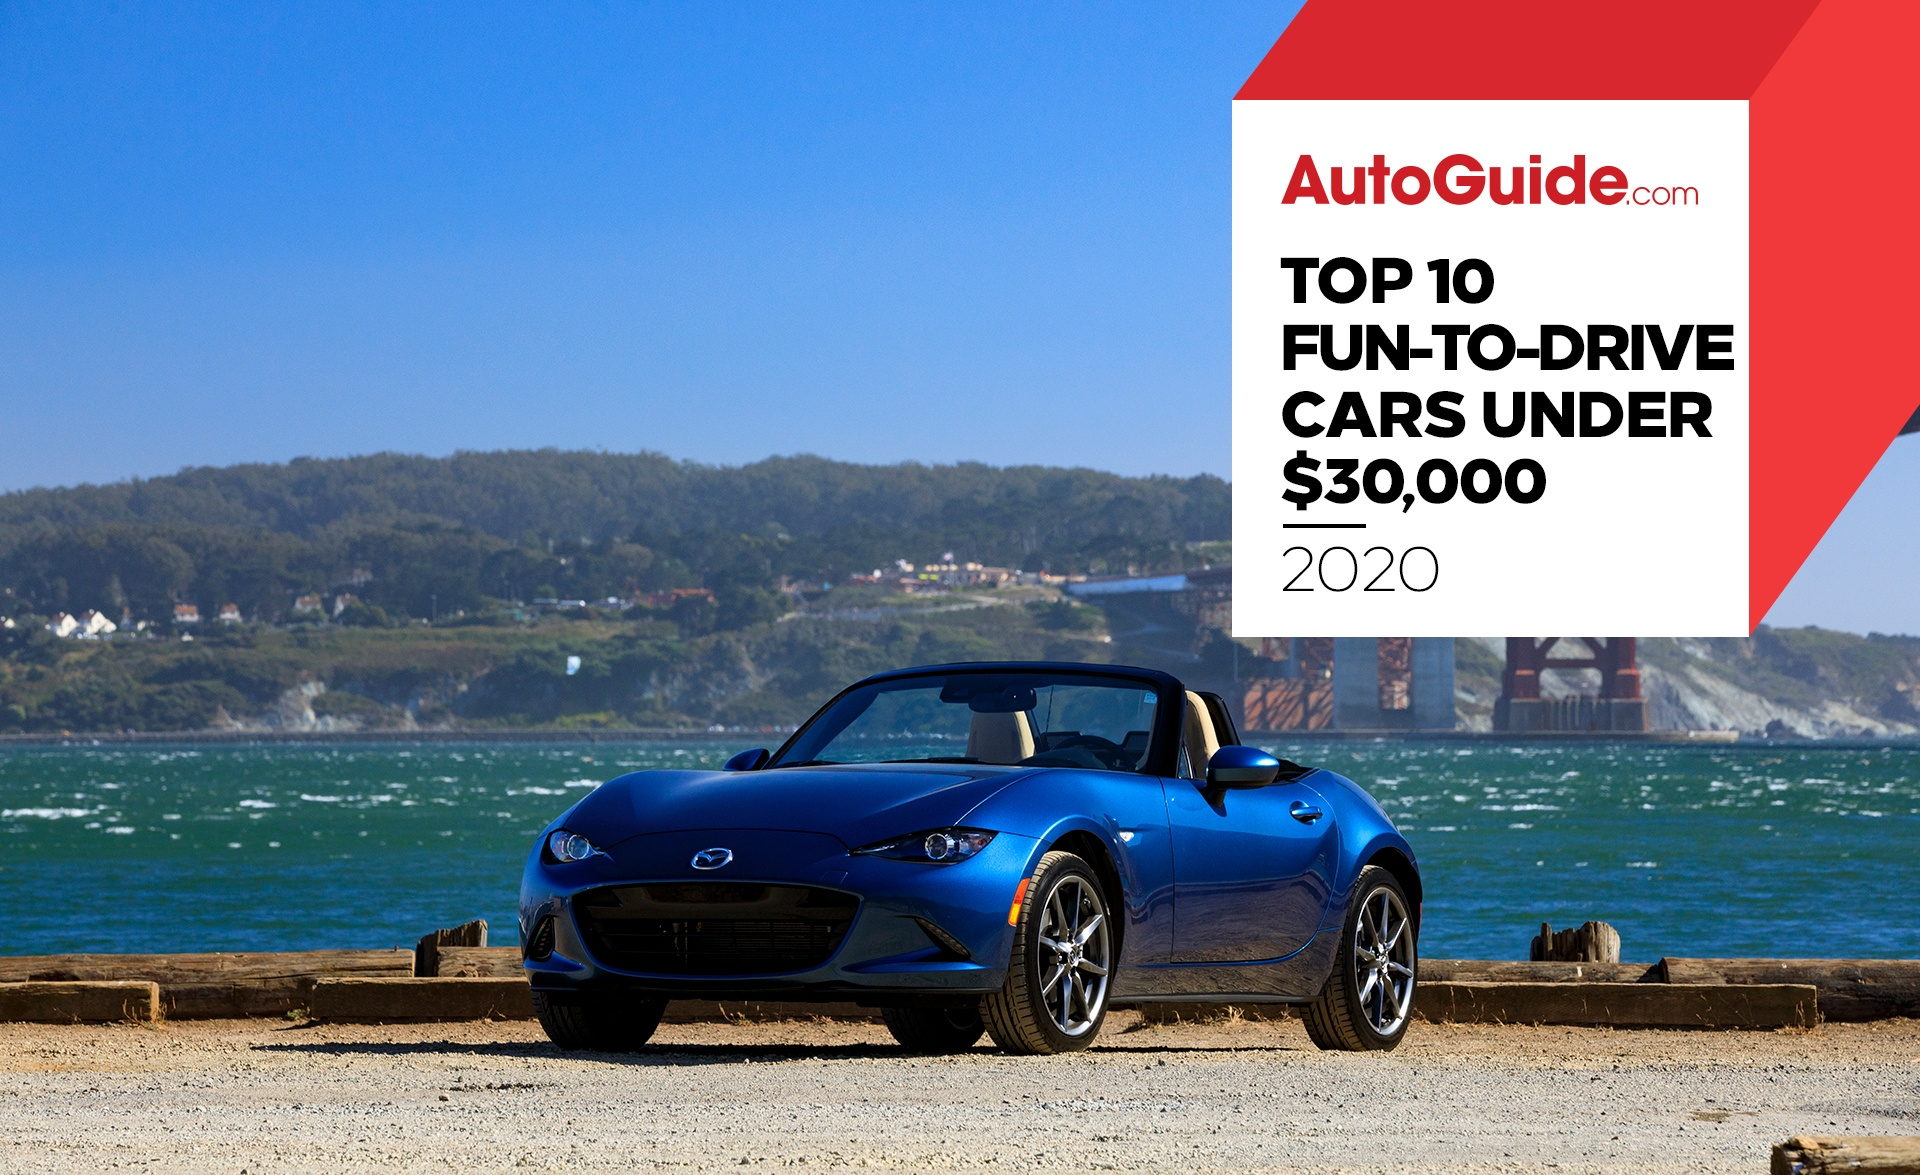 Top 10 Fun-to-Drive Cars Under $30,000